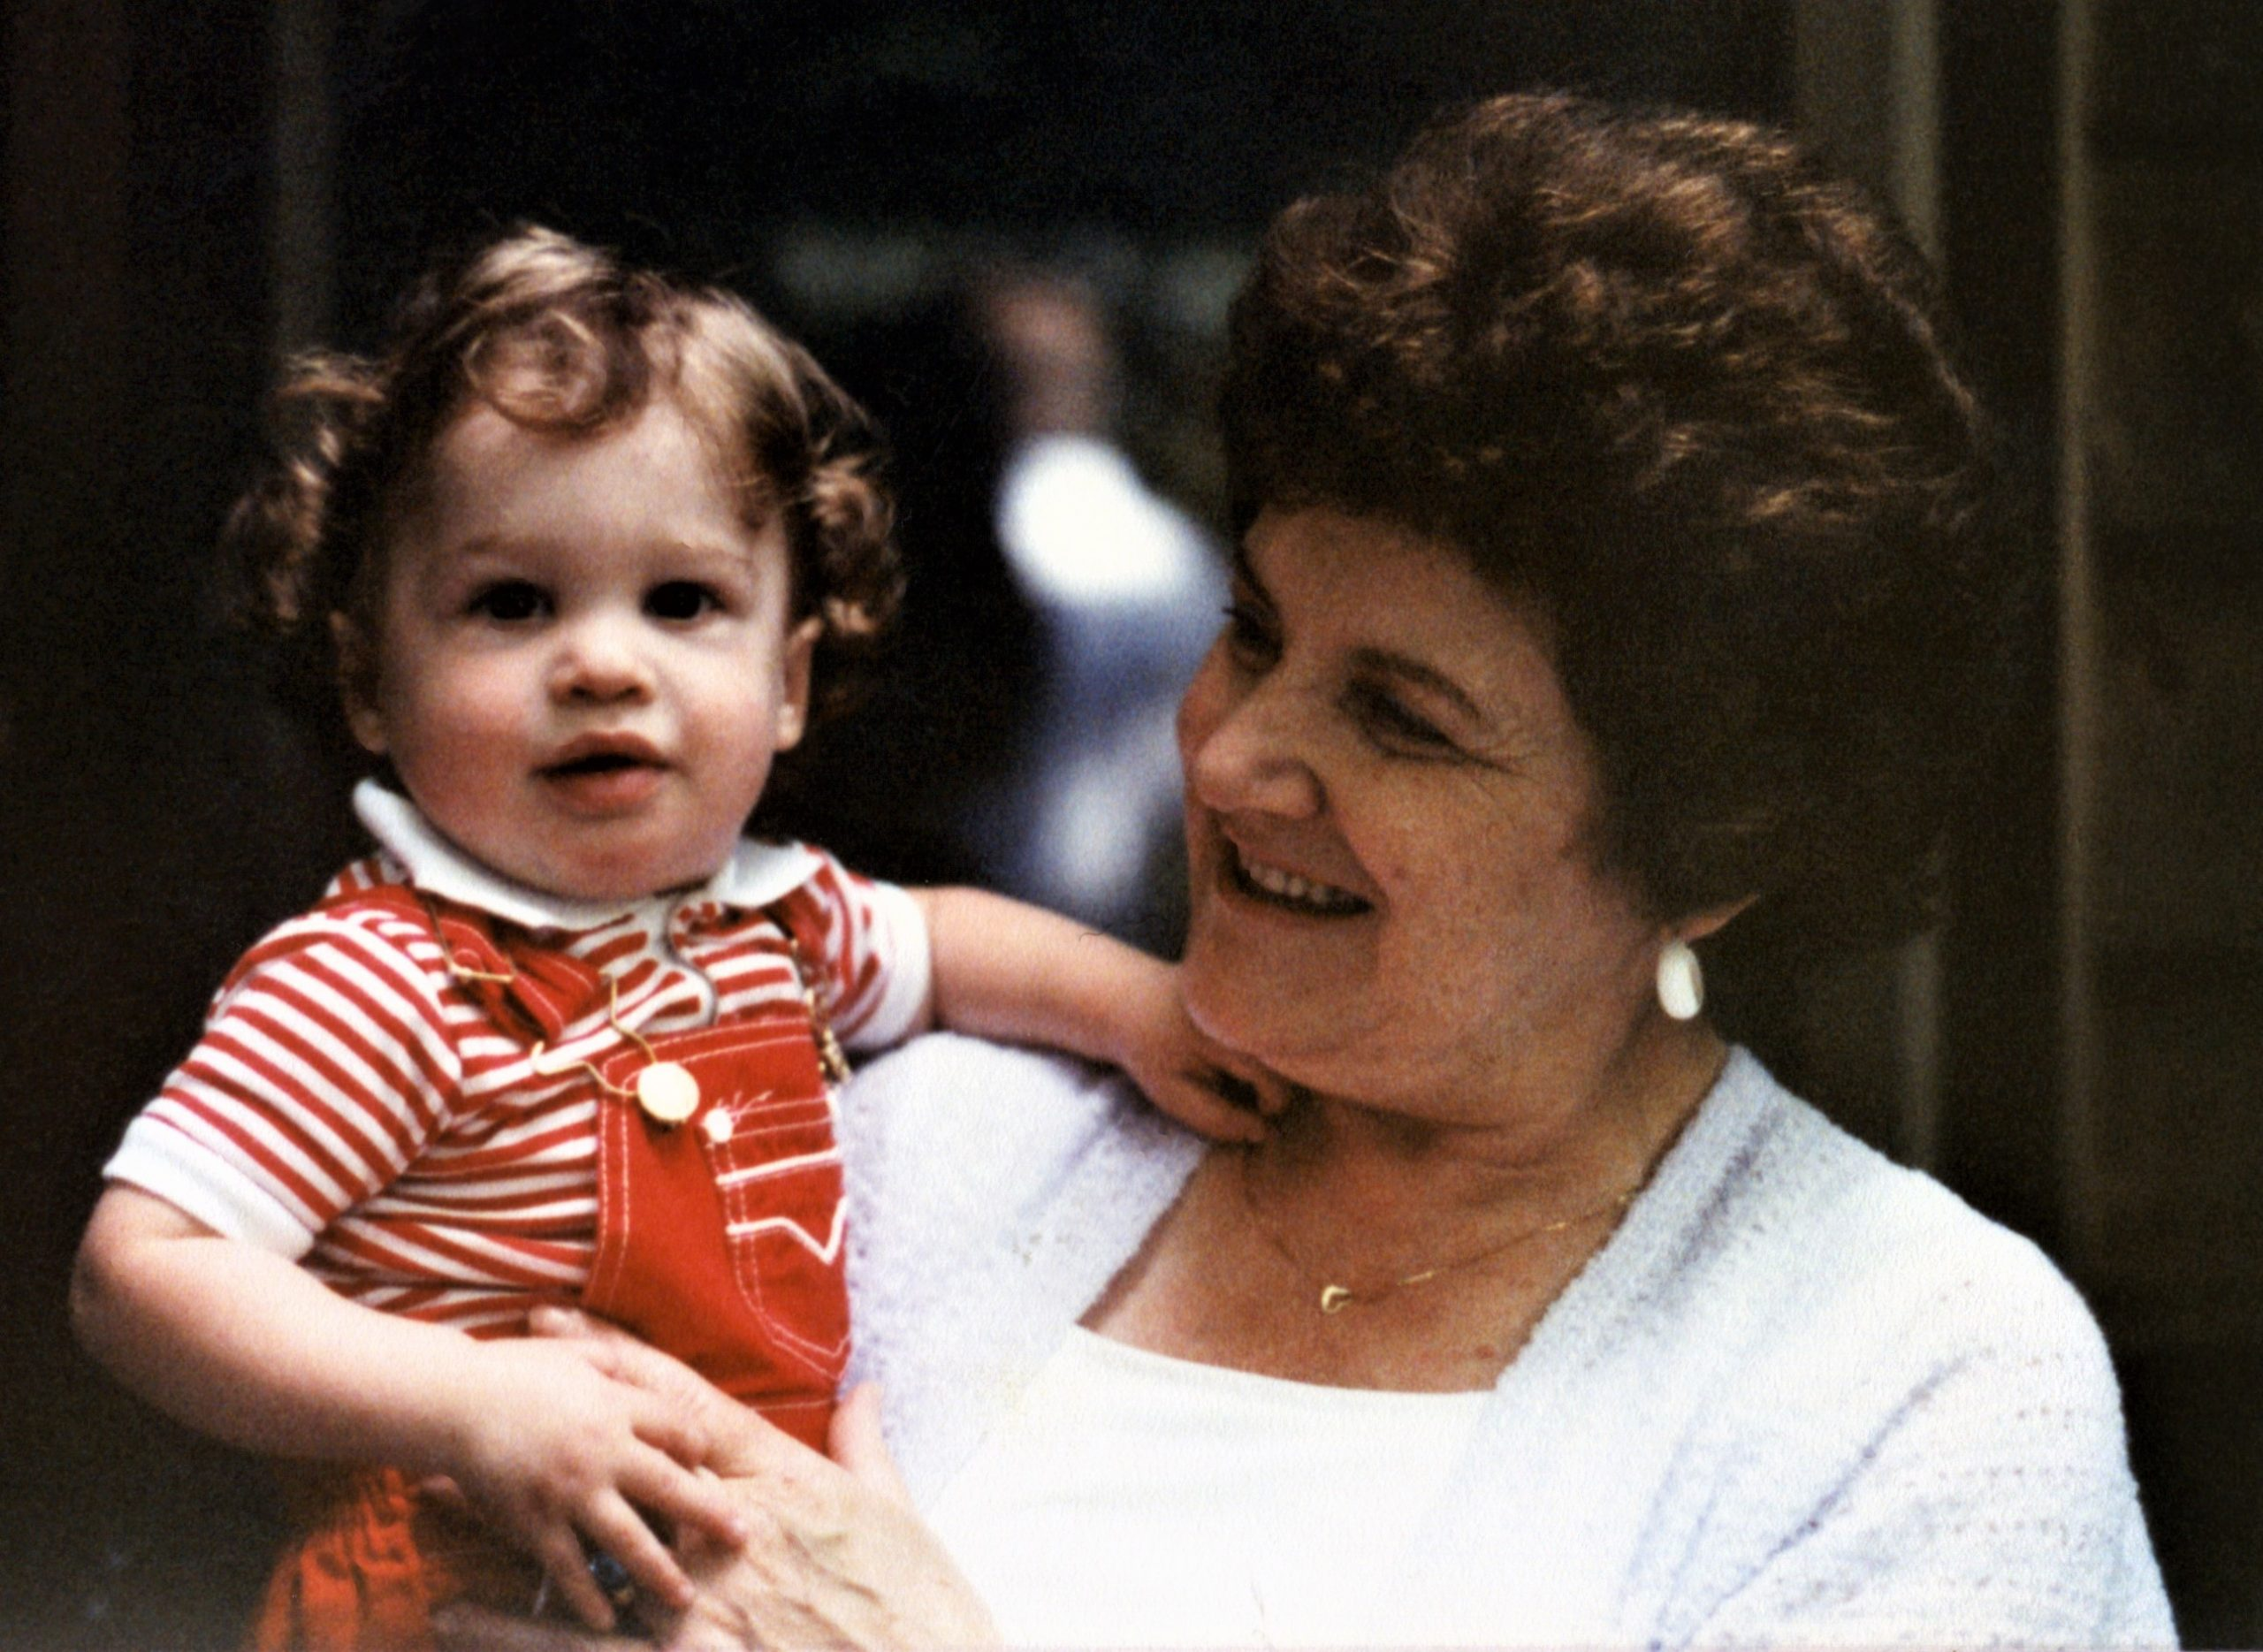 Dr. Mladenovic as a child, with her mother.